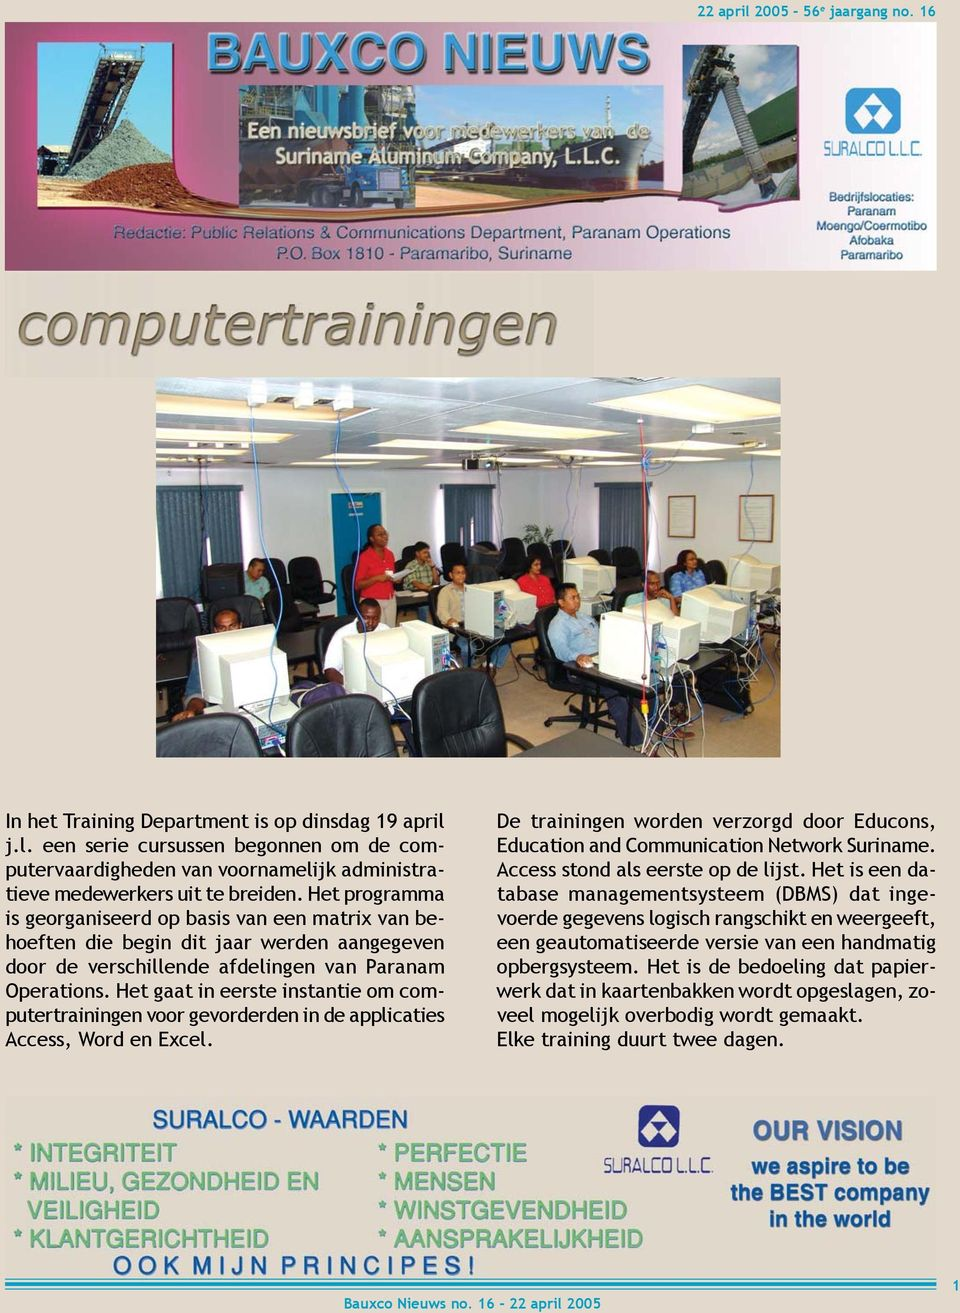 Het gaat in eerste instantie om computertrainingen voor gevorderden in de applicaties Access, Word en Excel. De trainingen worden verzorgd door Educons, Education and Communication Network Suriname.